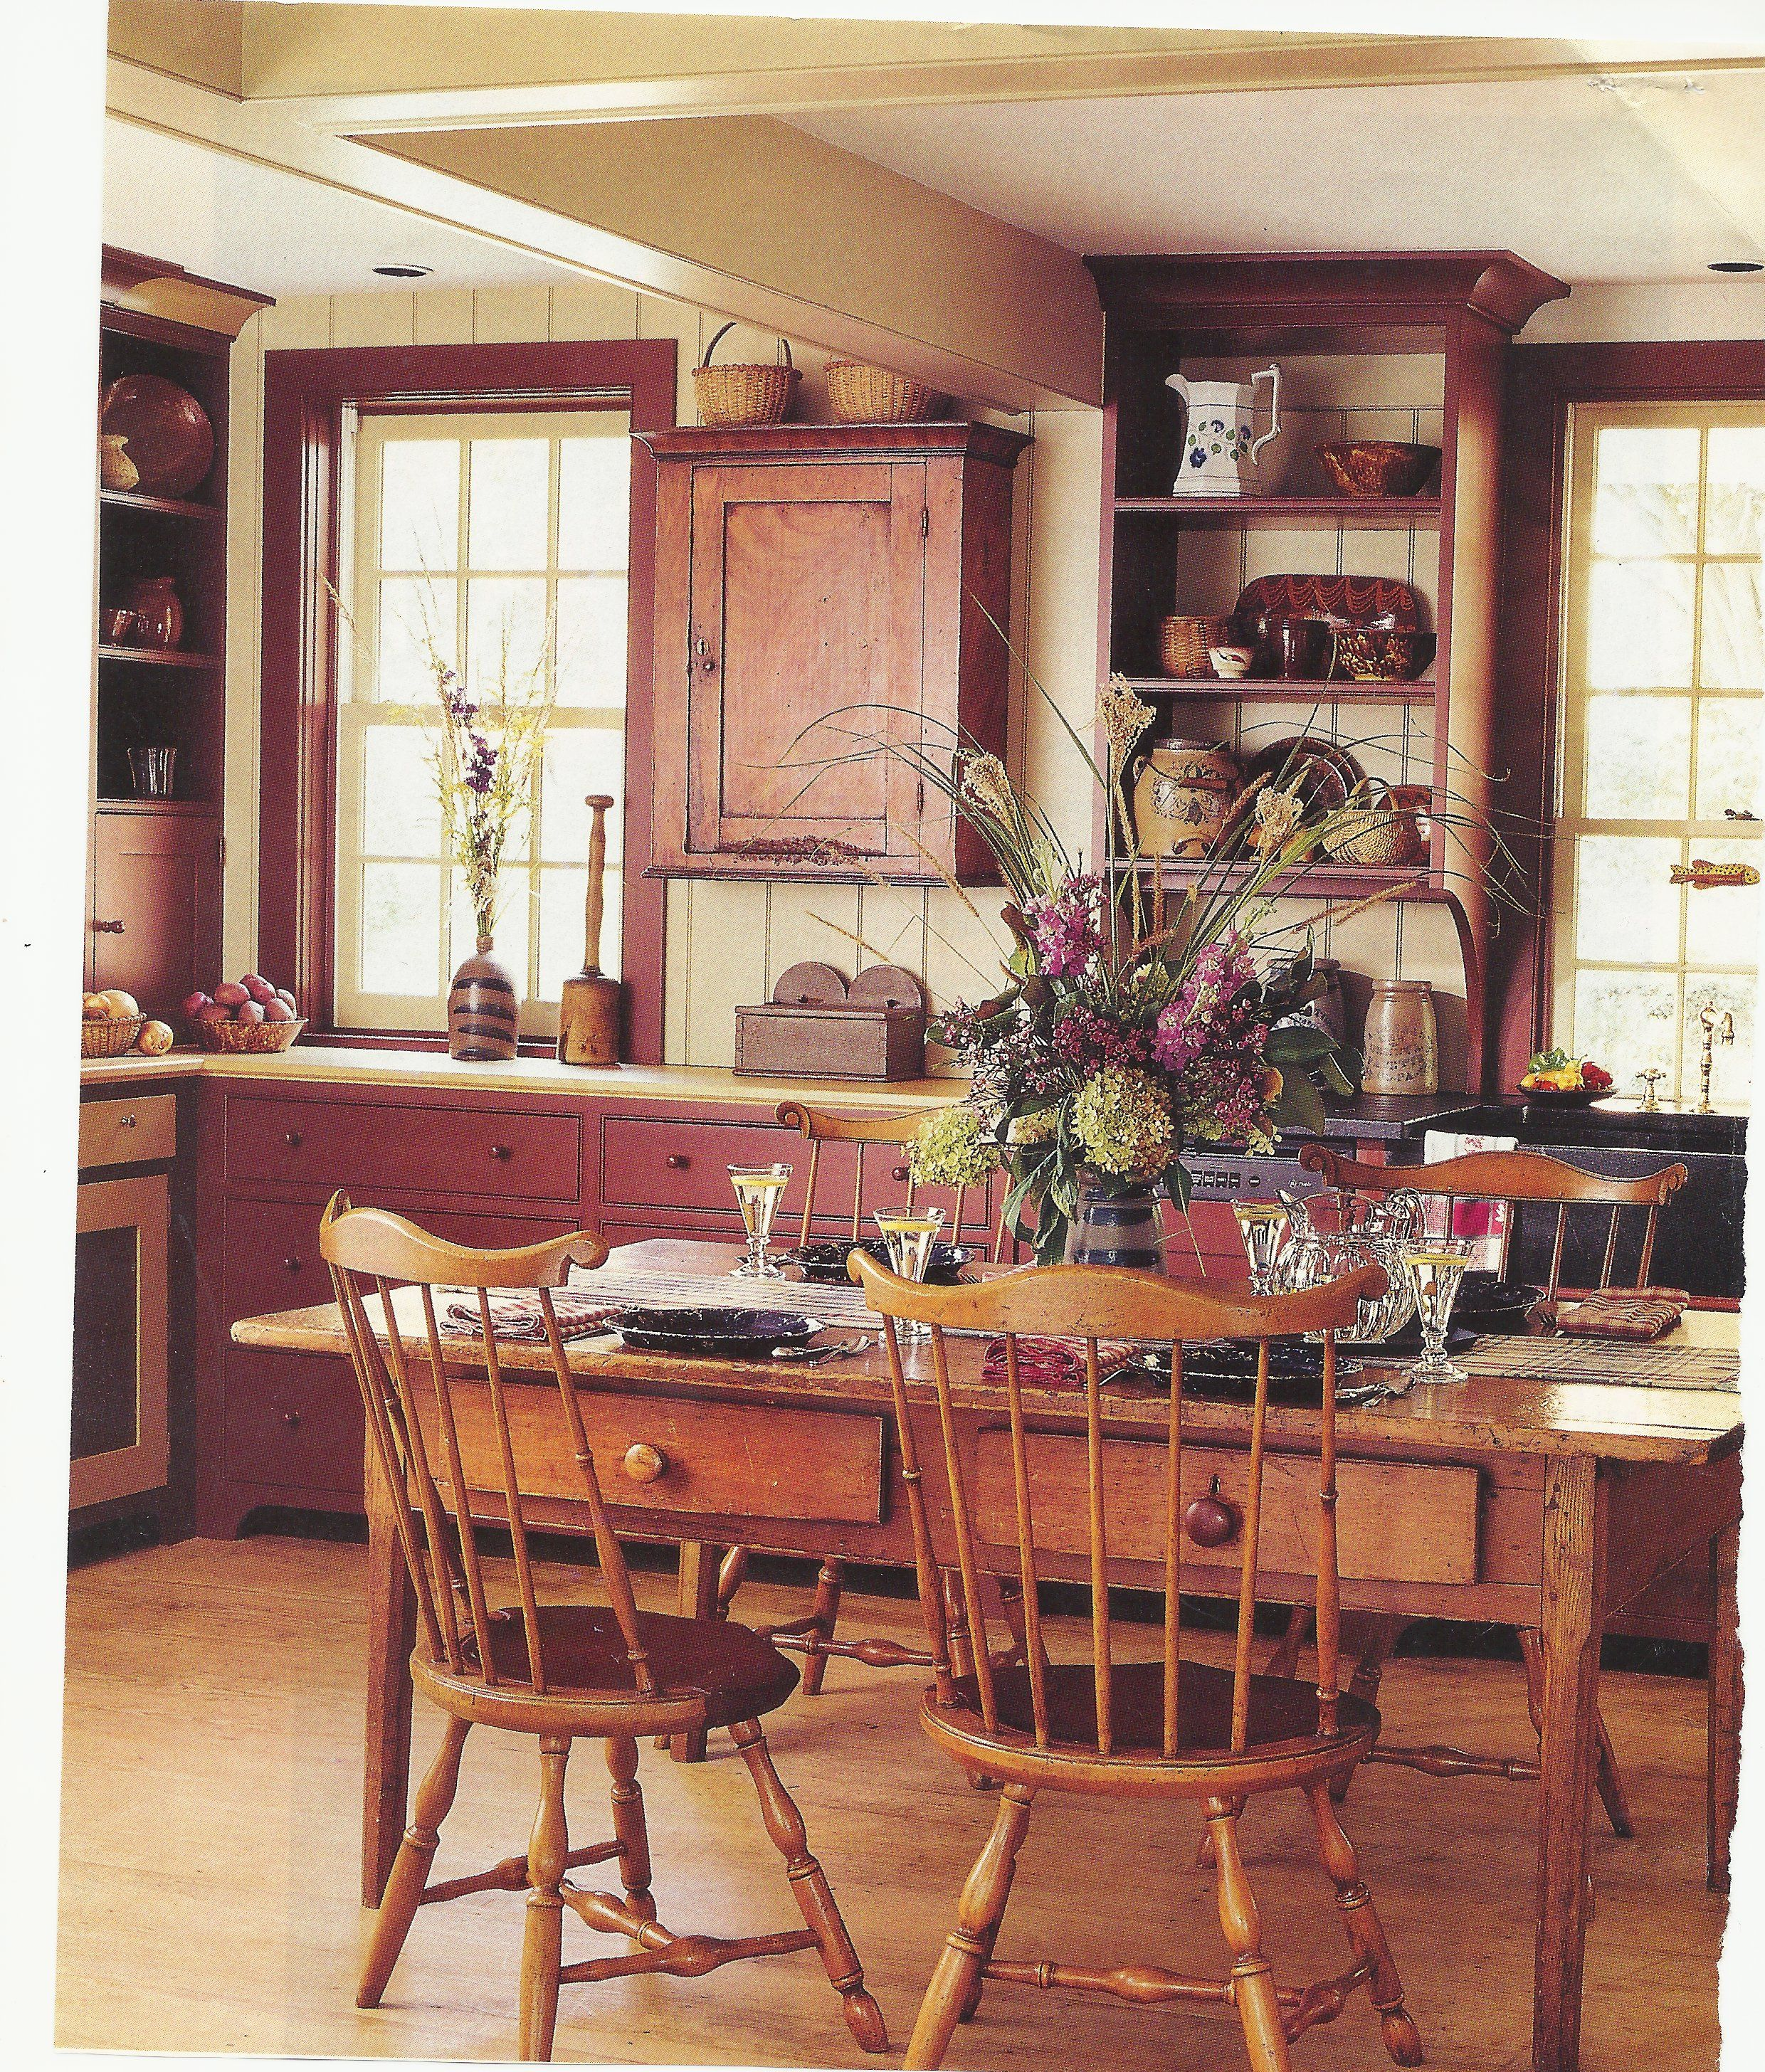 kitchen from Classic American Homes | kitchen ideas | Pinterest ...